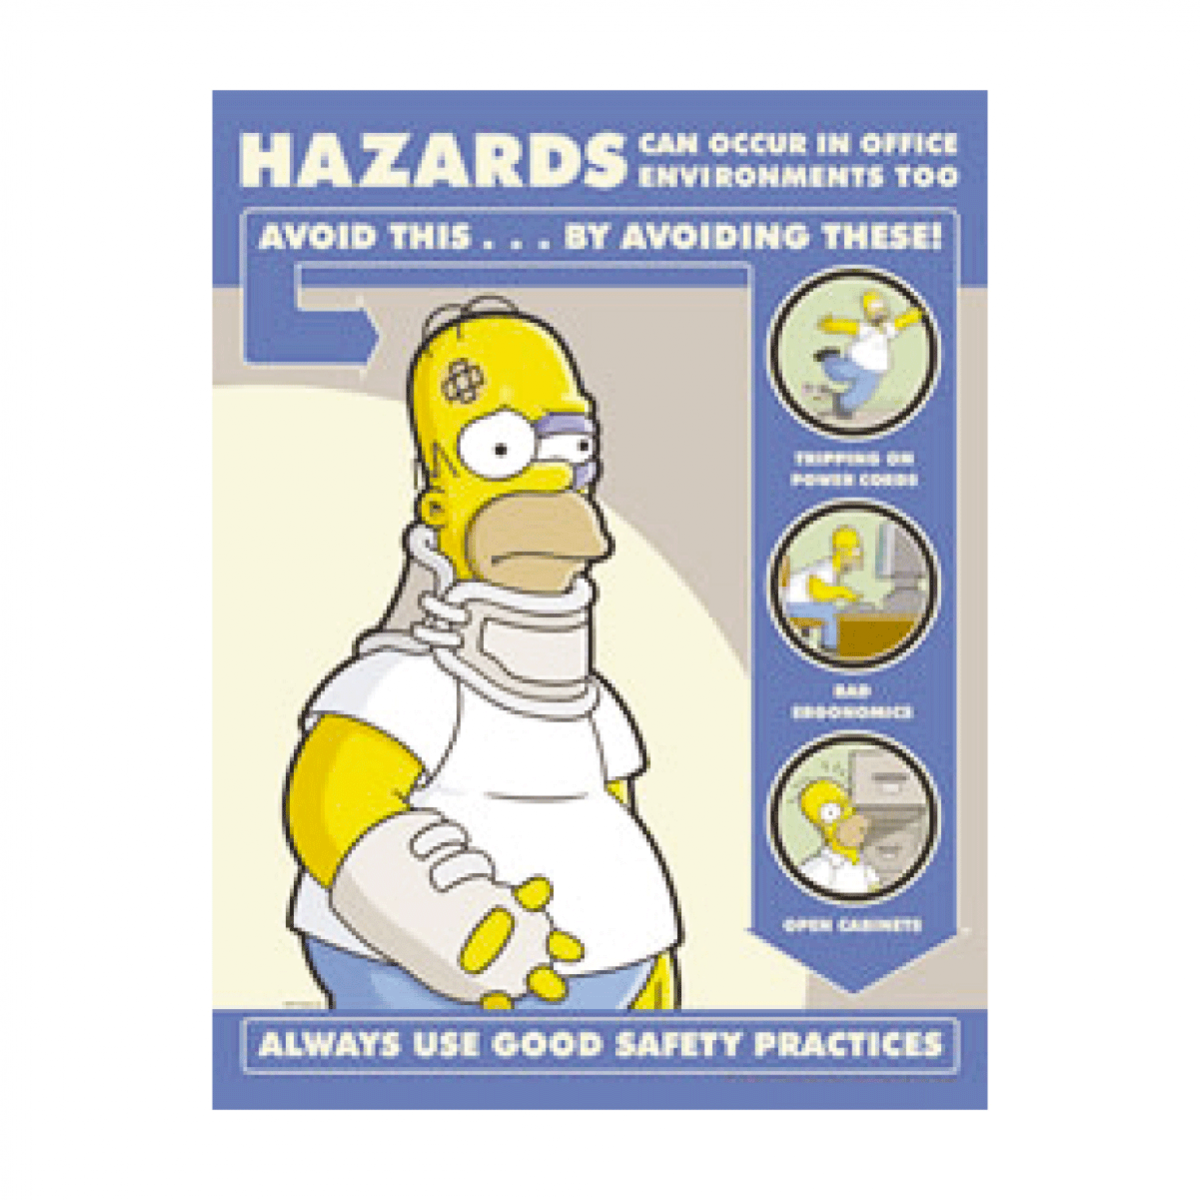 Simpsons Hazards In Office Environment Poster